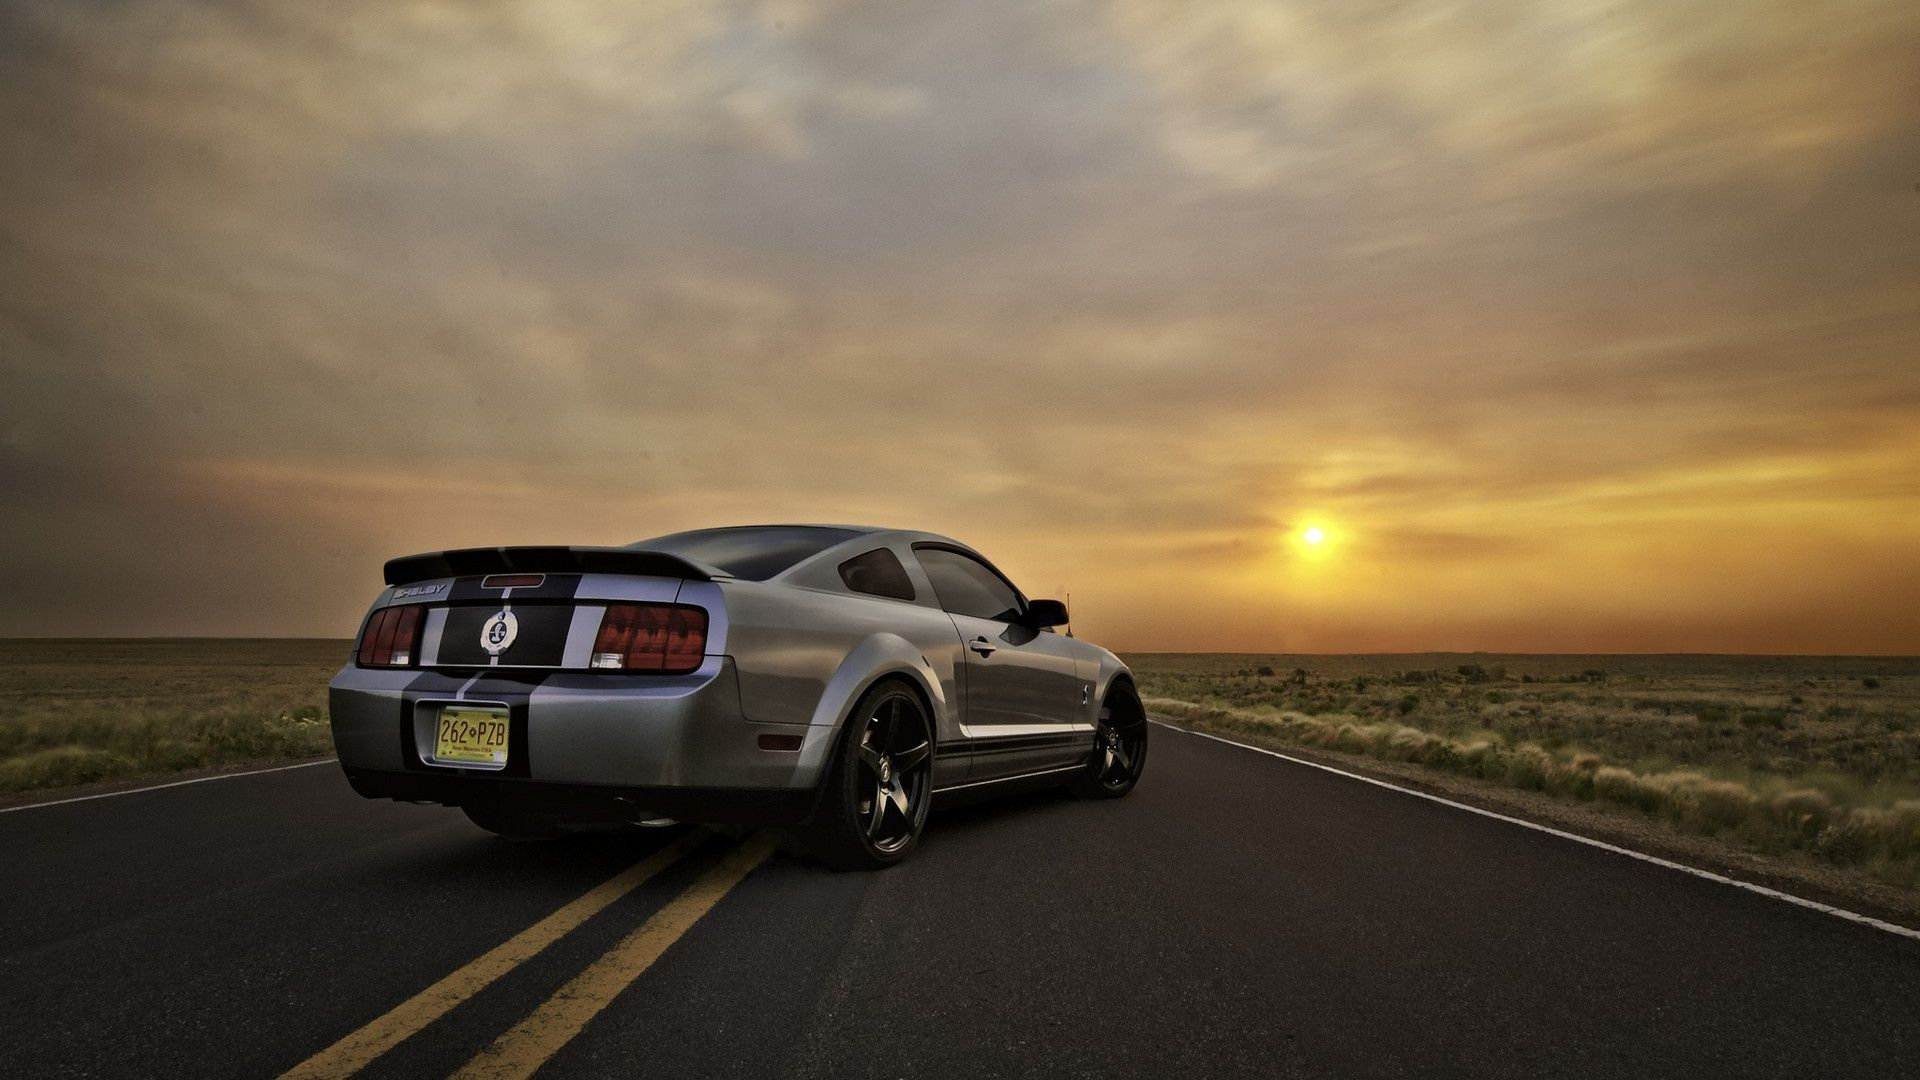 Silver ford mustang sunset